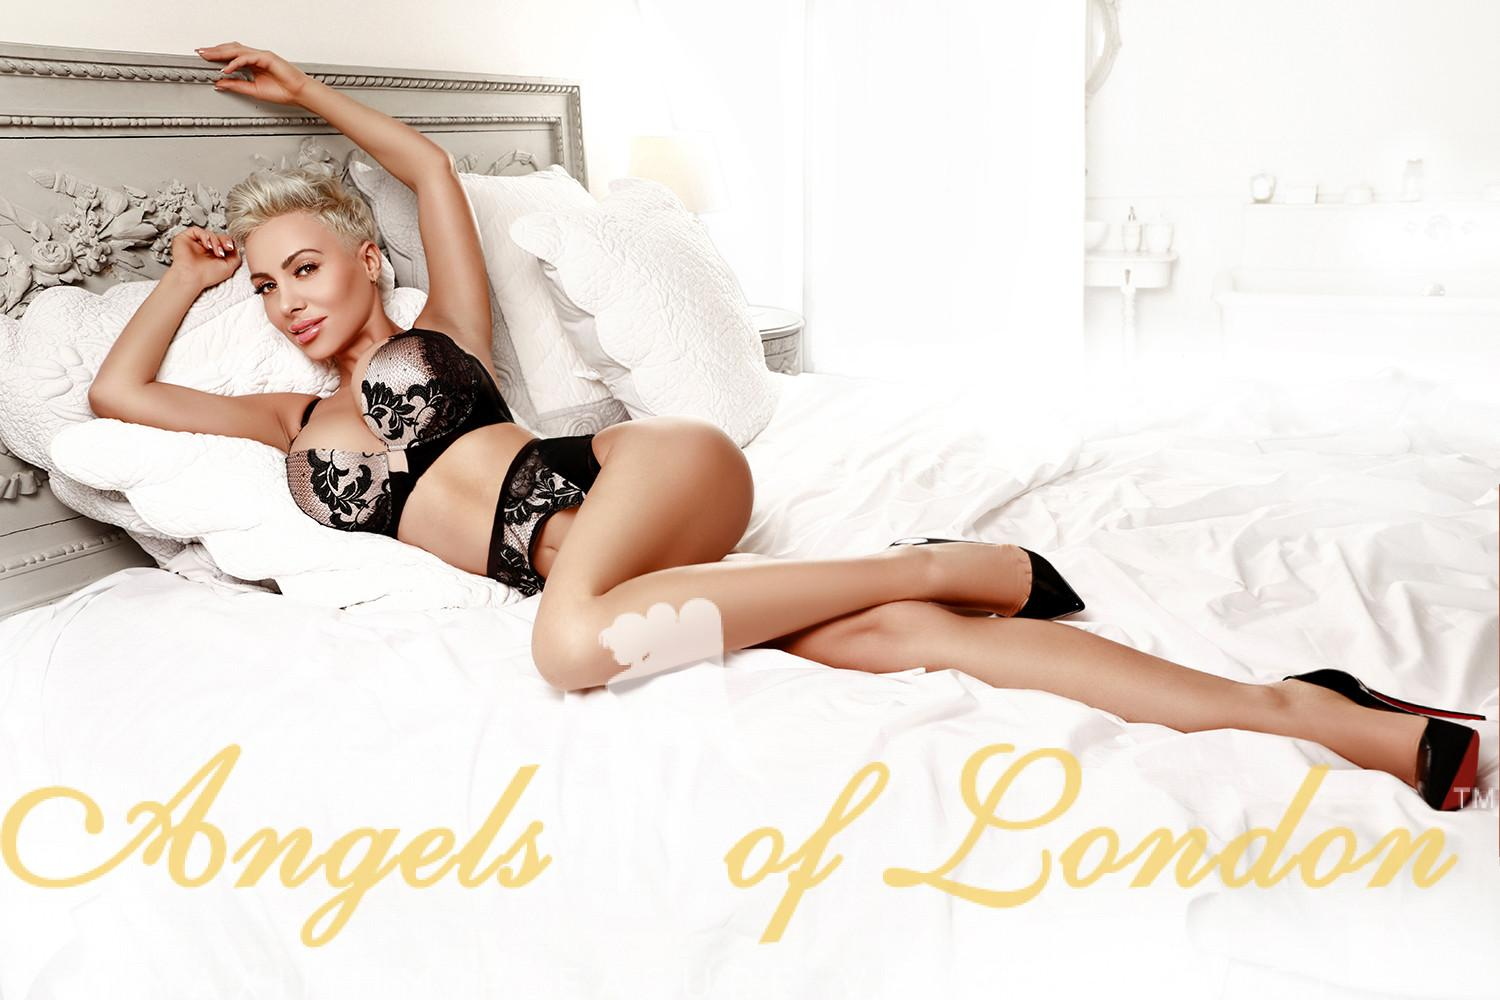 Eda from Angels of London